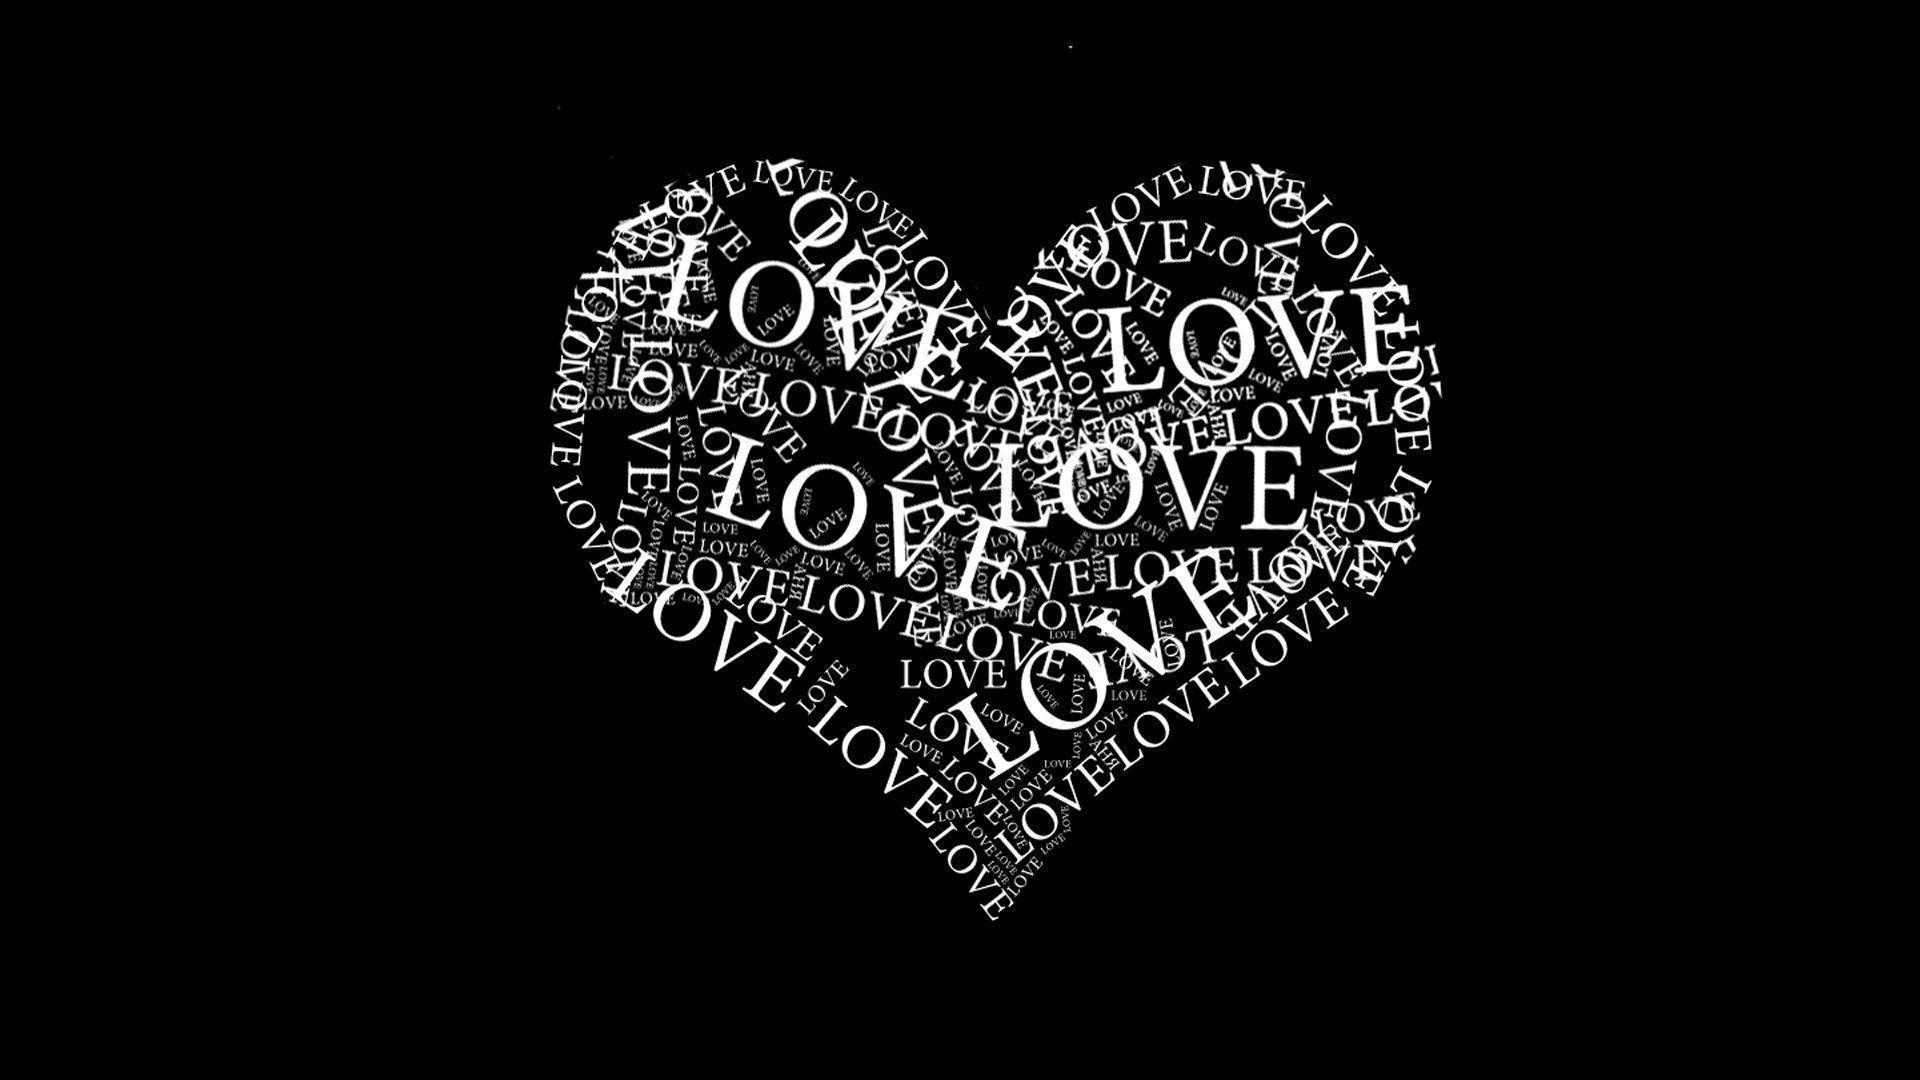 Image For > Love Heart Black And White